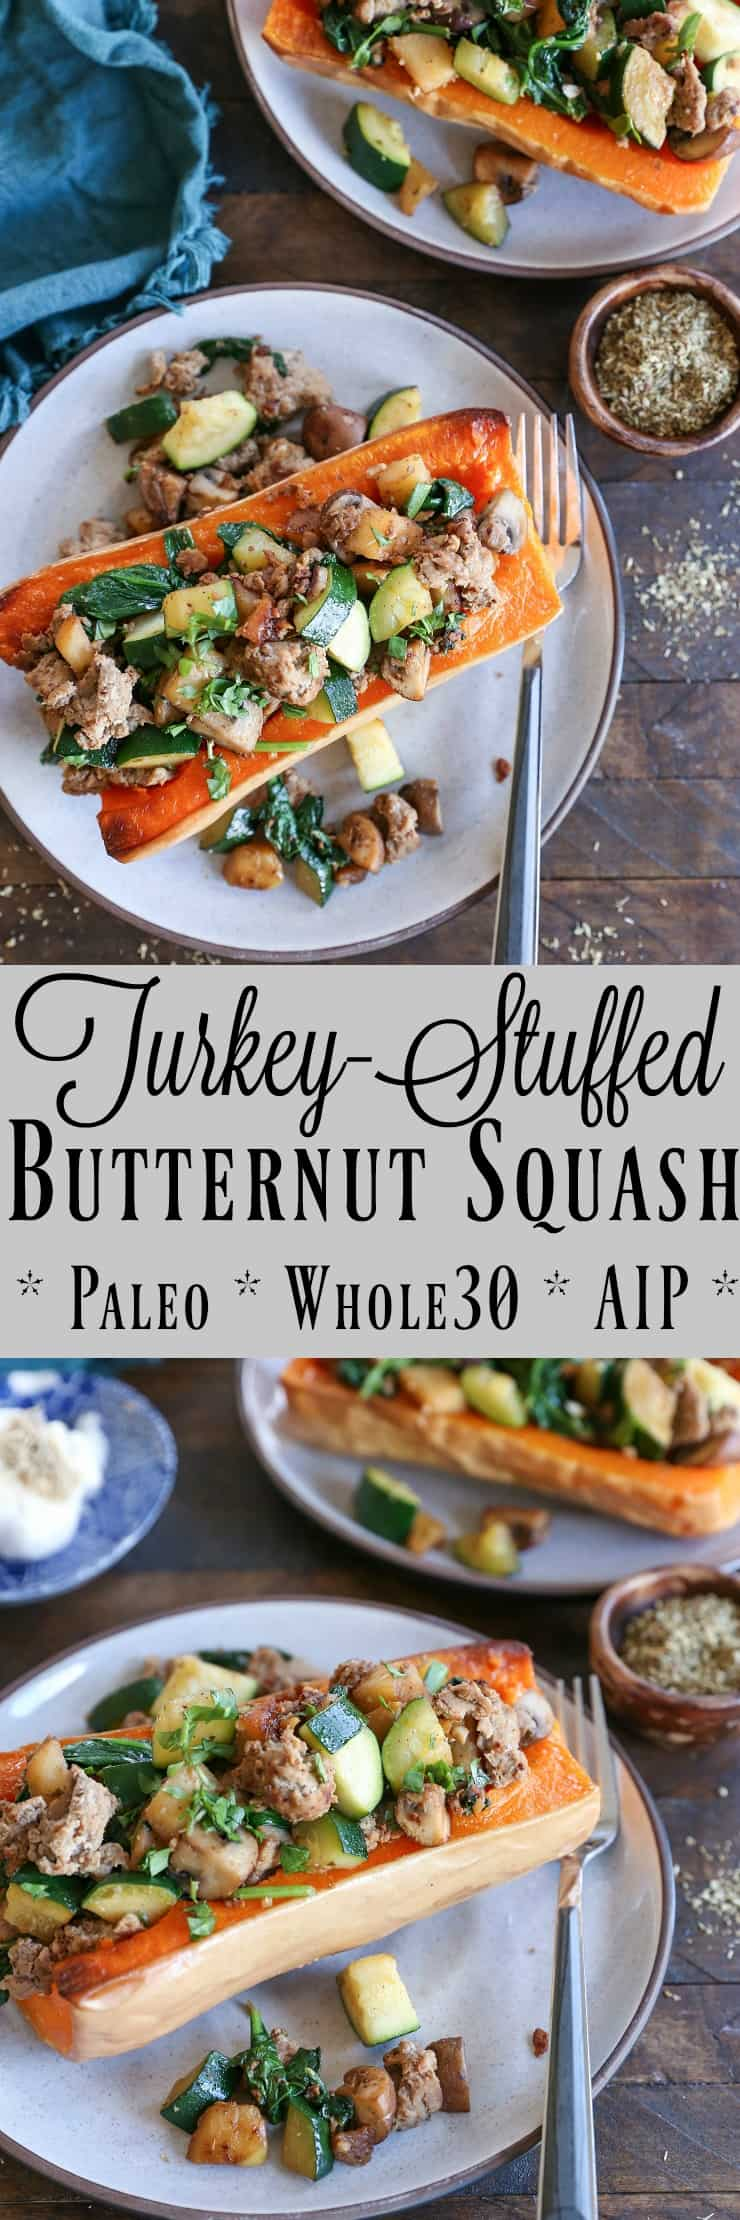 Turkey-Stuffed Butternut Squash with zucchini, mushrooms, and spinach. This healthy meal is paleo, AIP, and delicious!